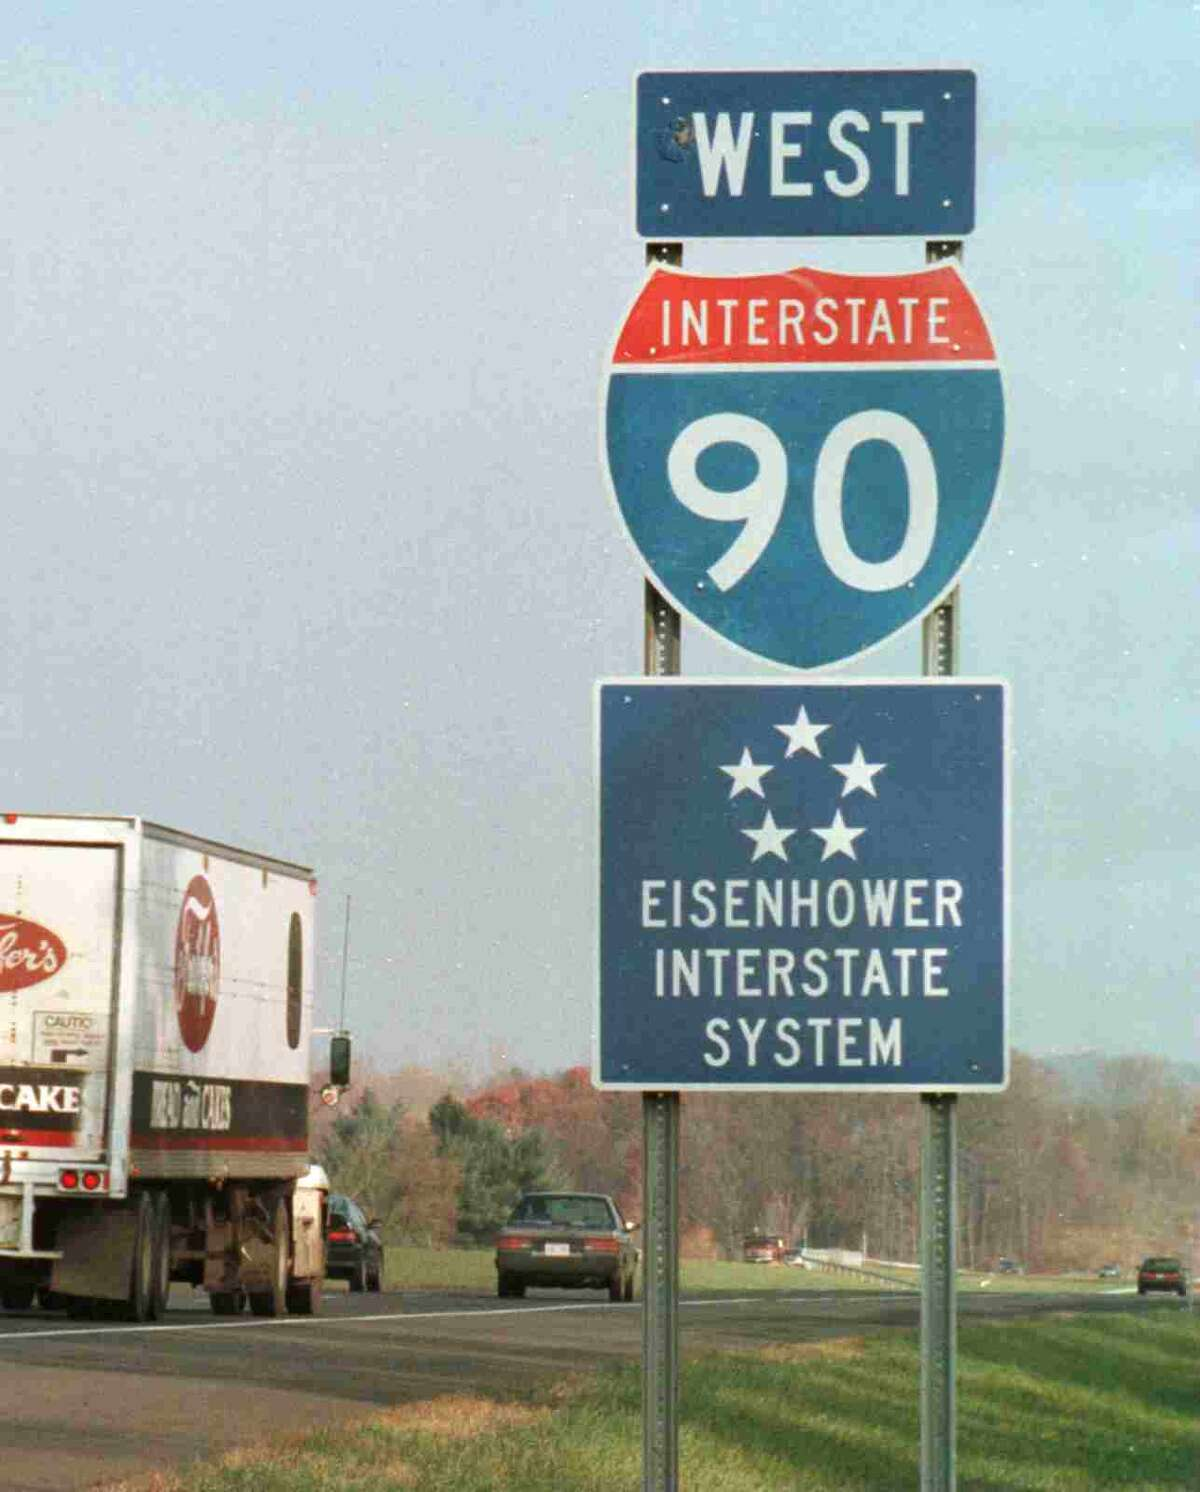 Times Union Staff Photo by Skip Dickstein: Eisenhower Interstate System sign along I-90, in Schodack, Tuesday Nov. 21,1995